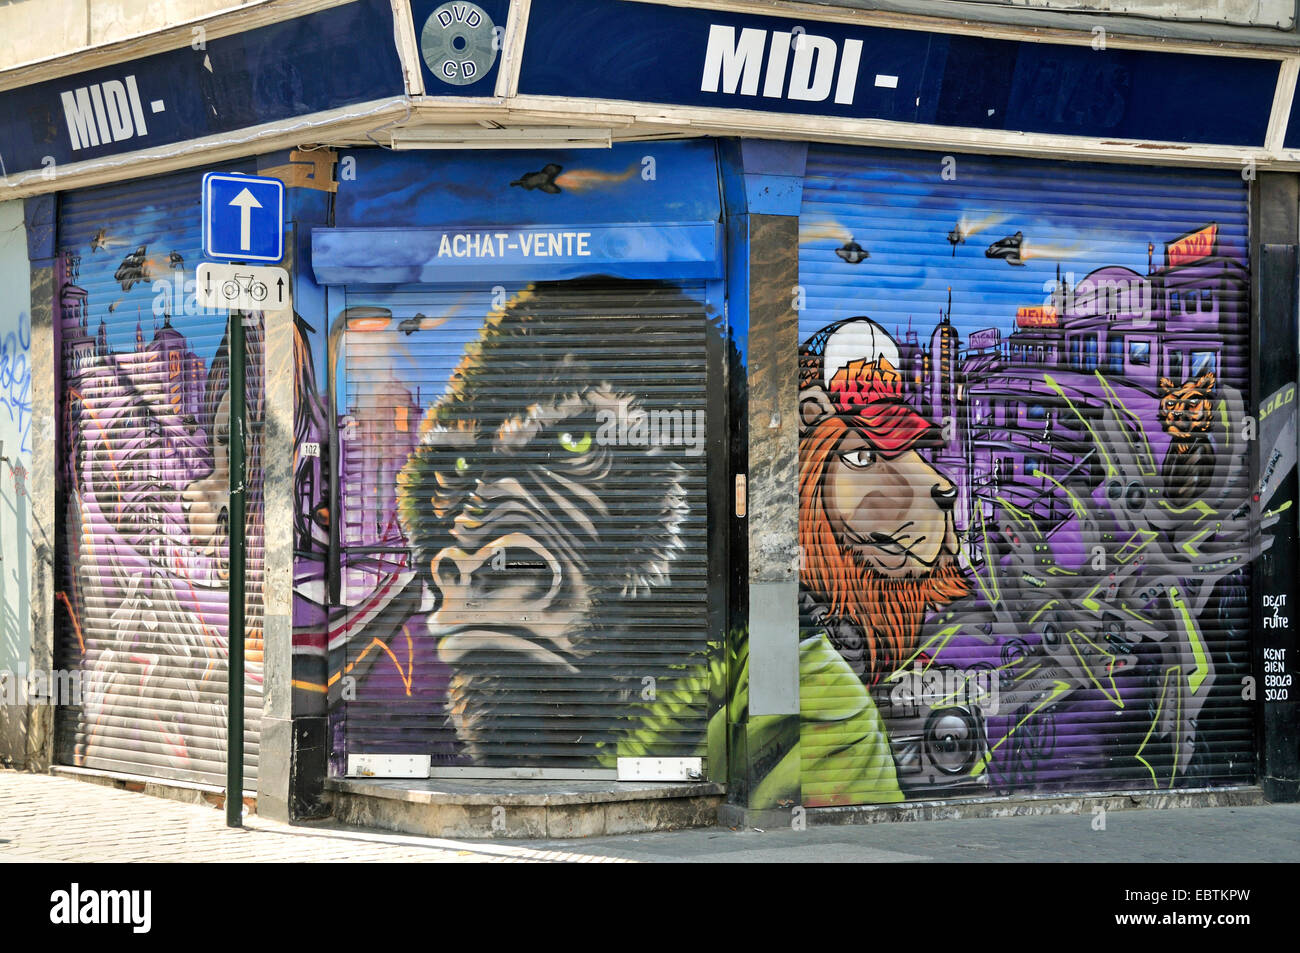 King Kong Graffiti On Roller Shutters Of Closed Store In The City Belgium Brussels